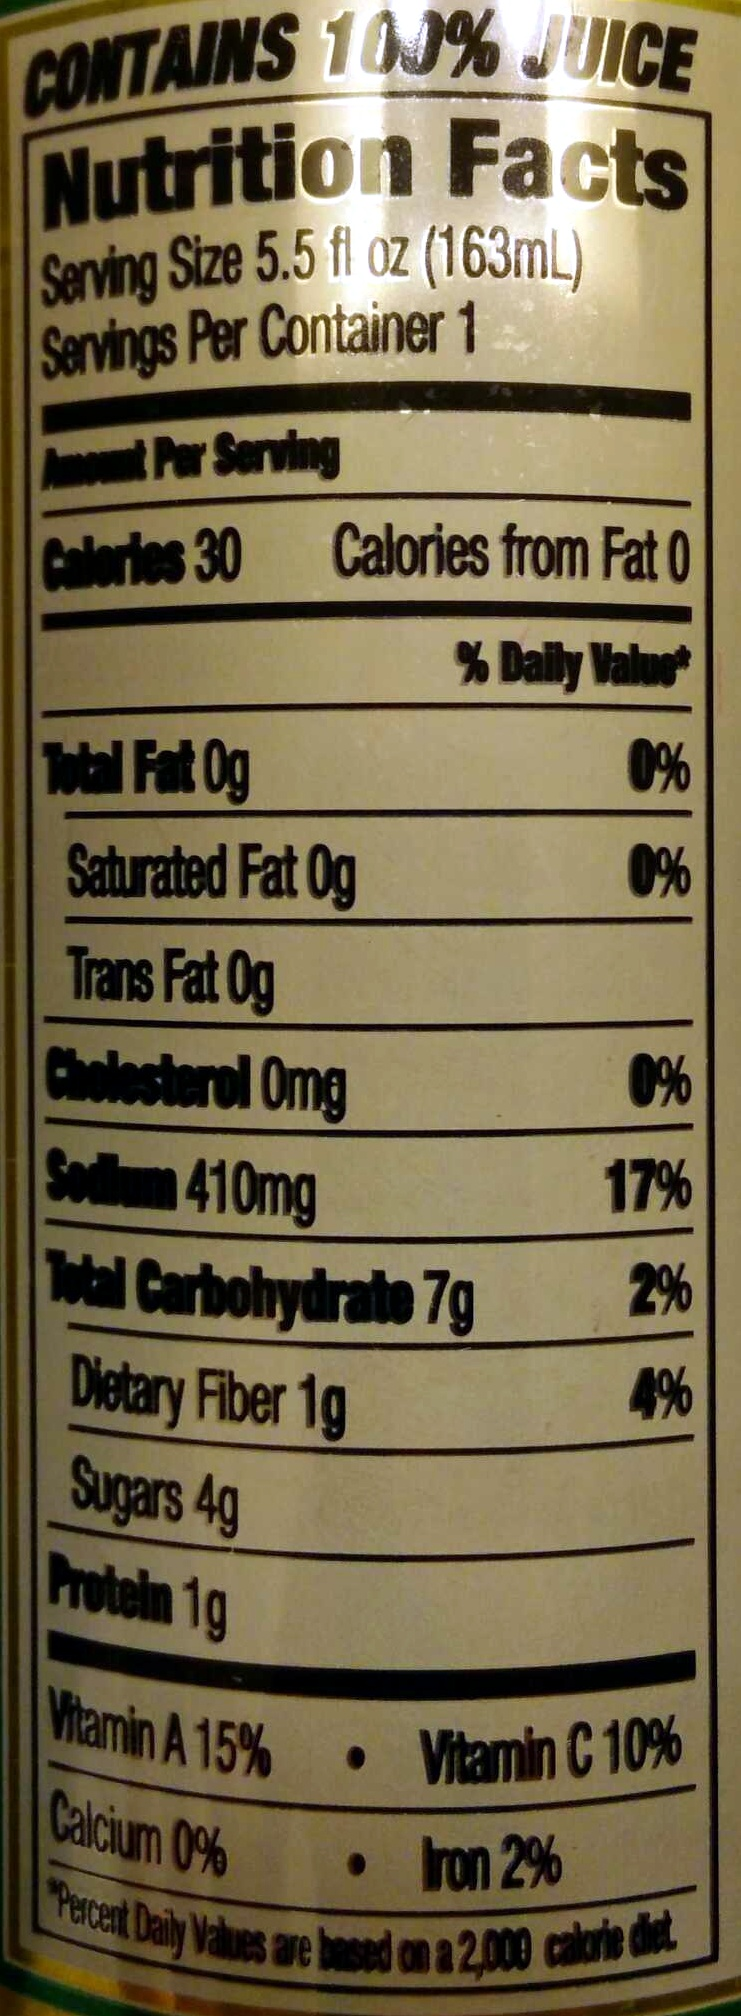 Tomato Juice from Concentrate - Nutrition facts